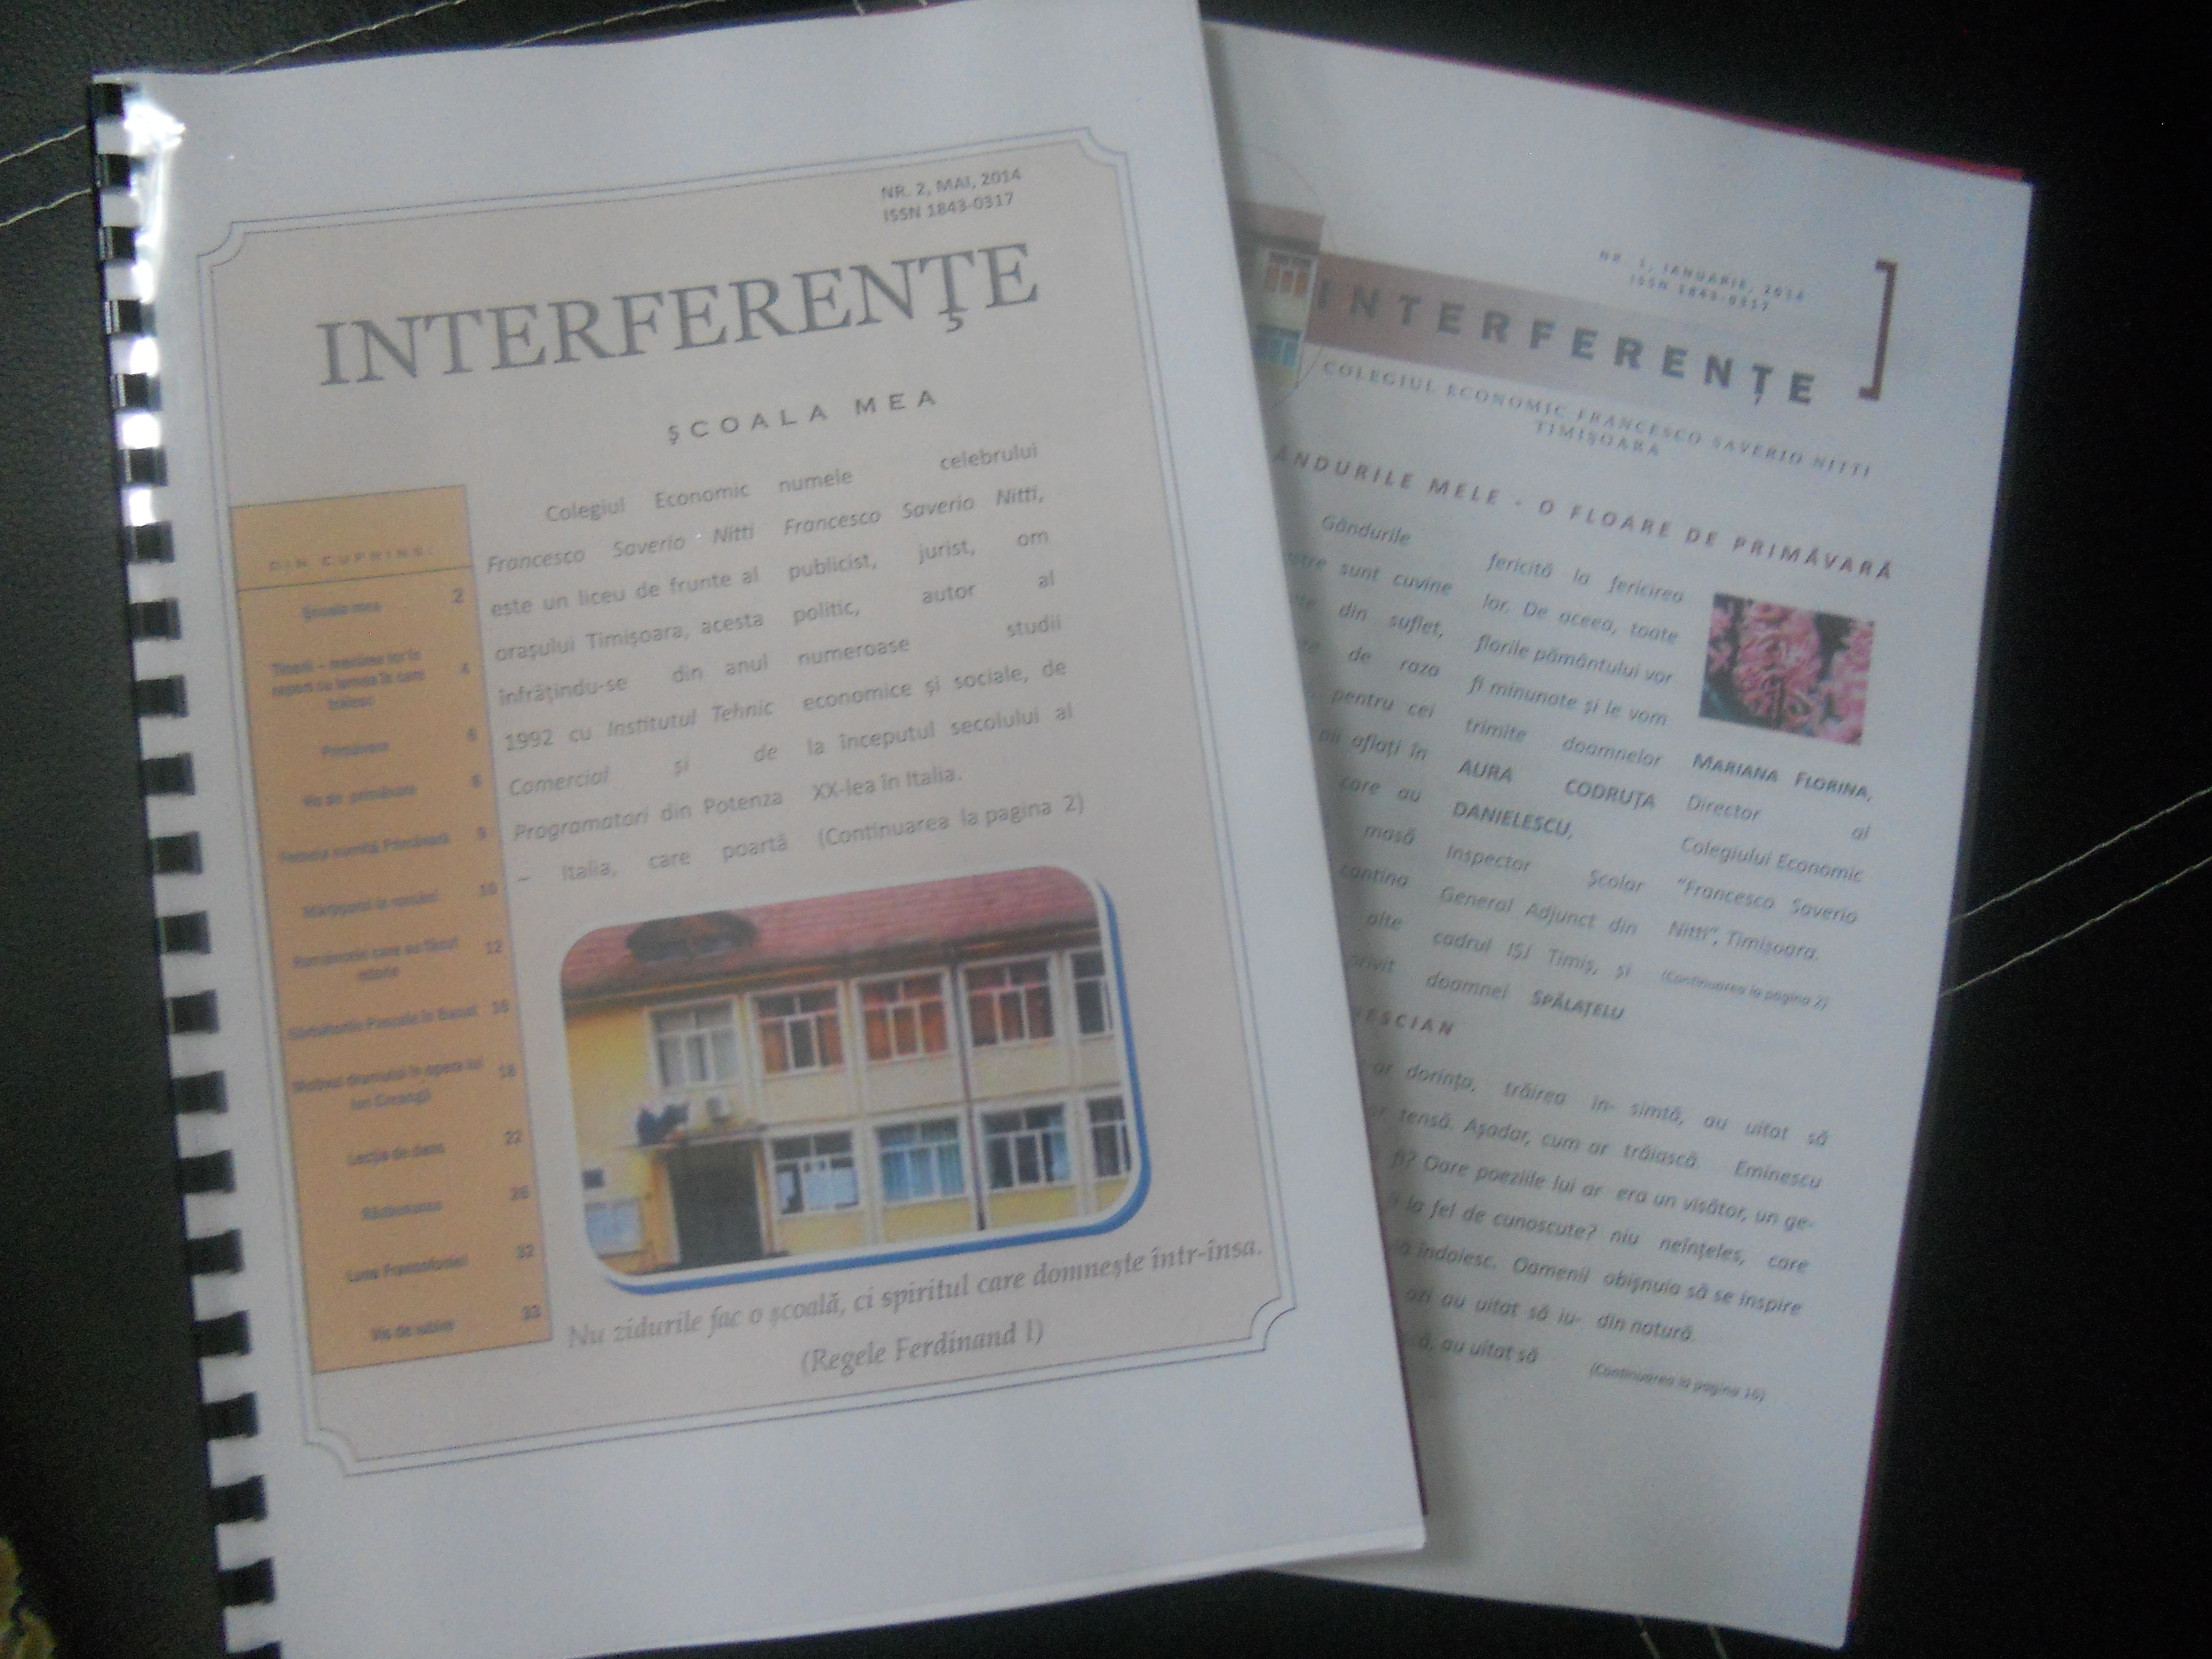 revista-interferente